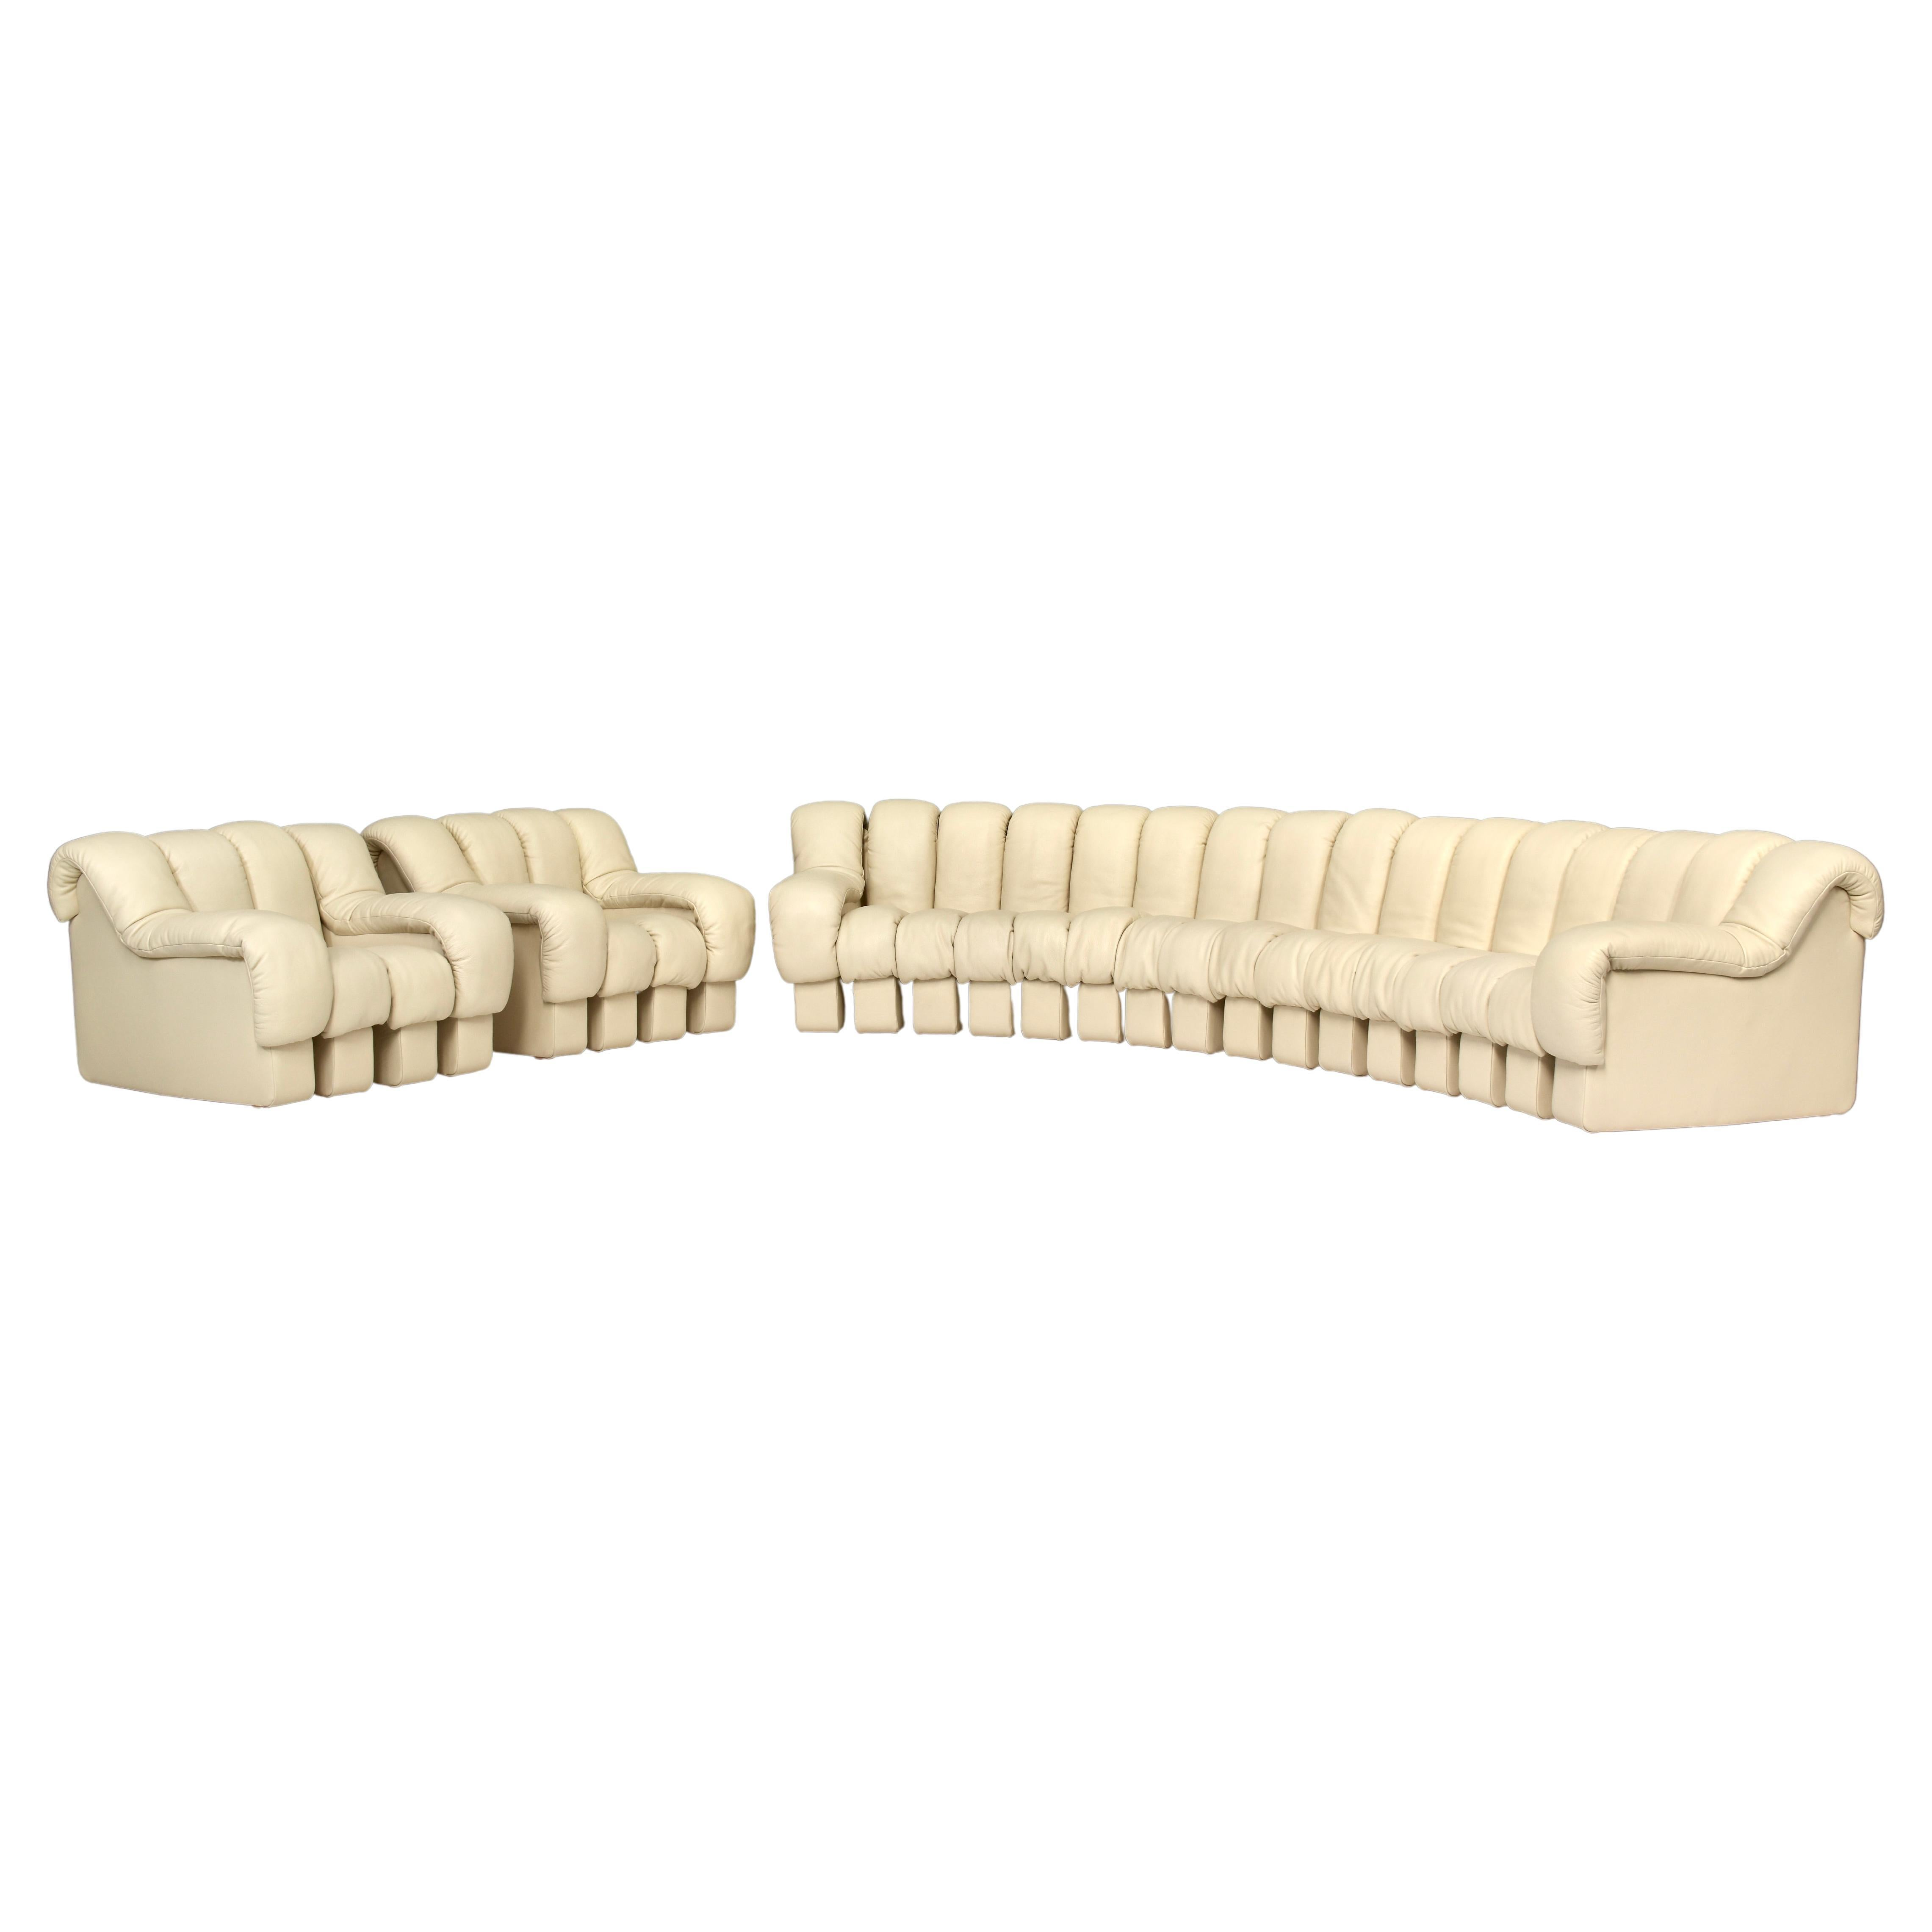 26 Pieces Ds600 Sectional Sofa and Chairs by De Sede in Crème Leather